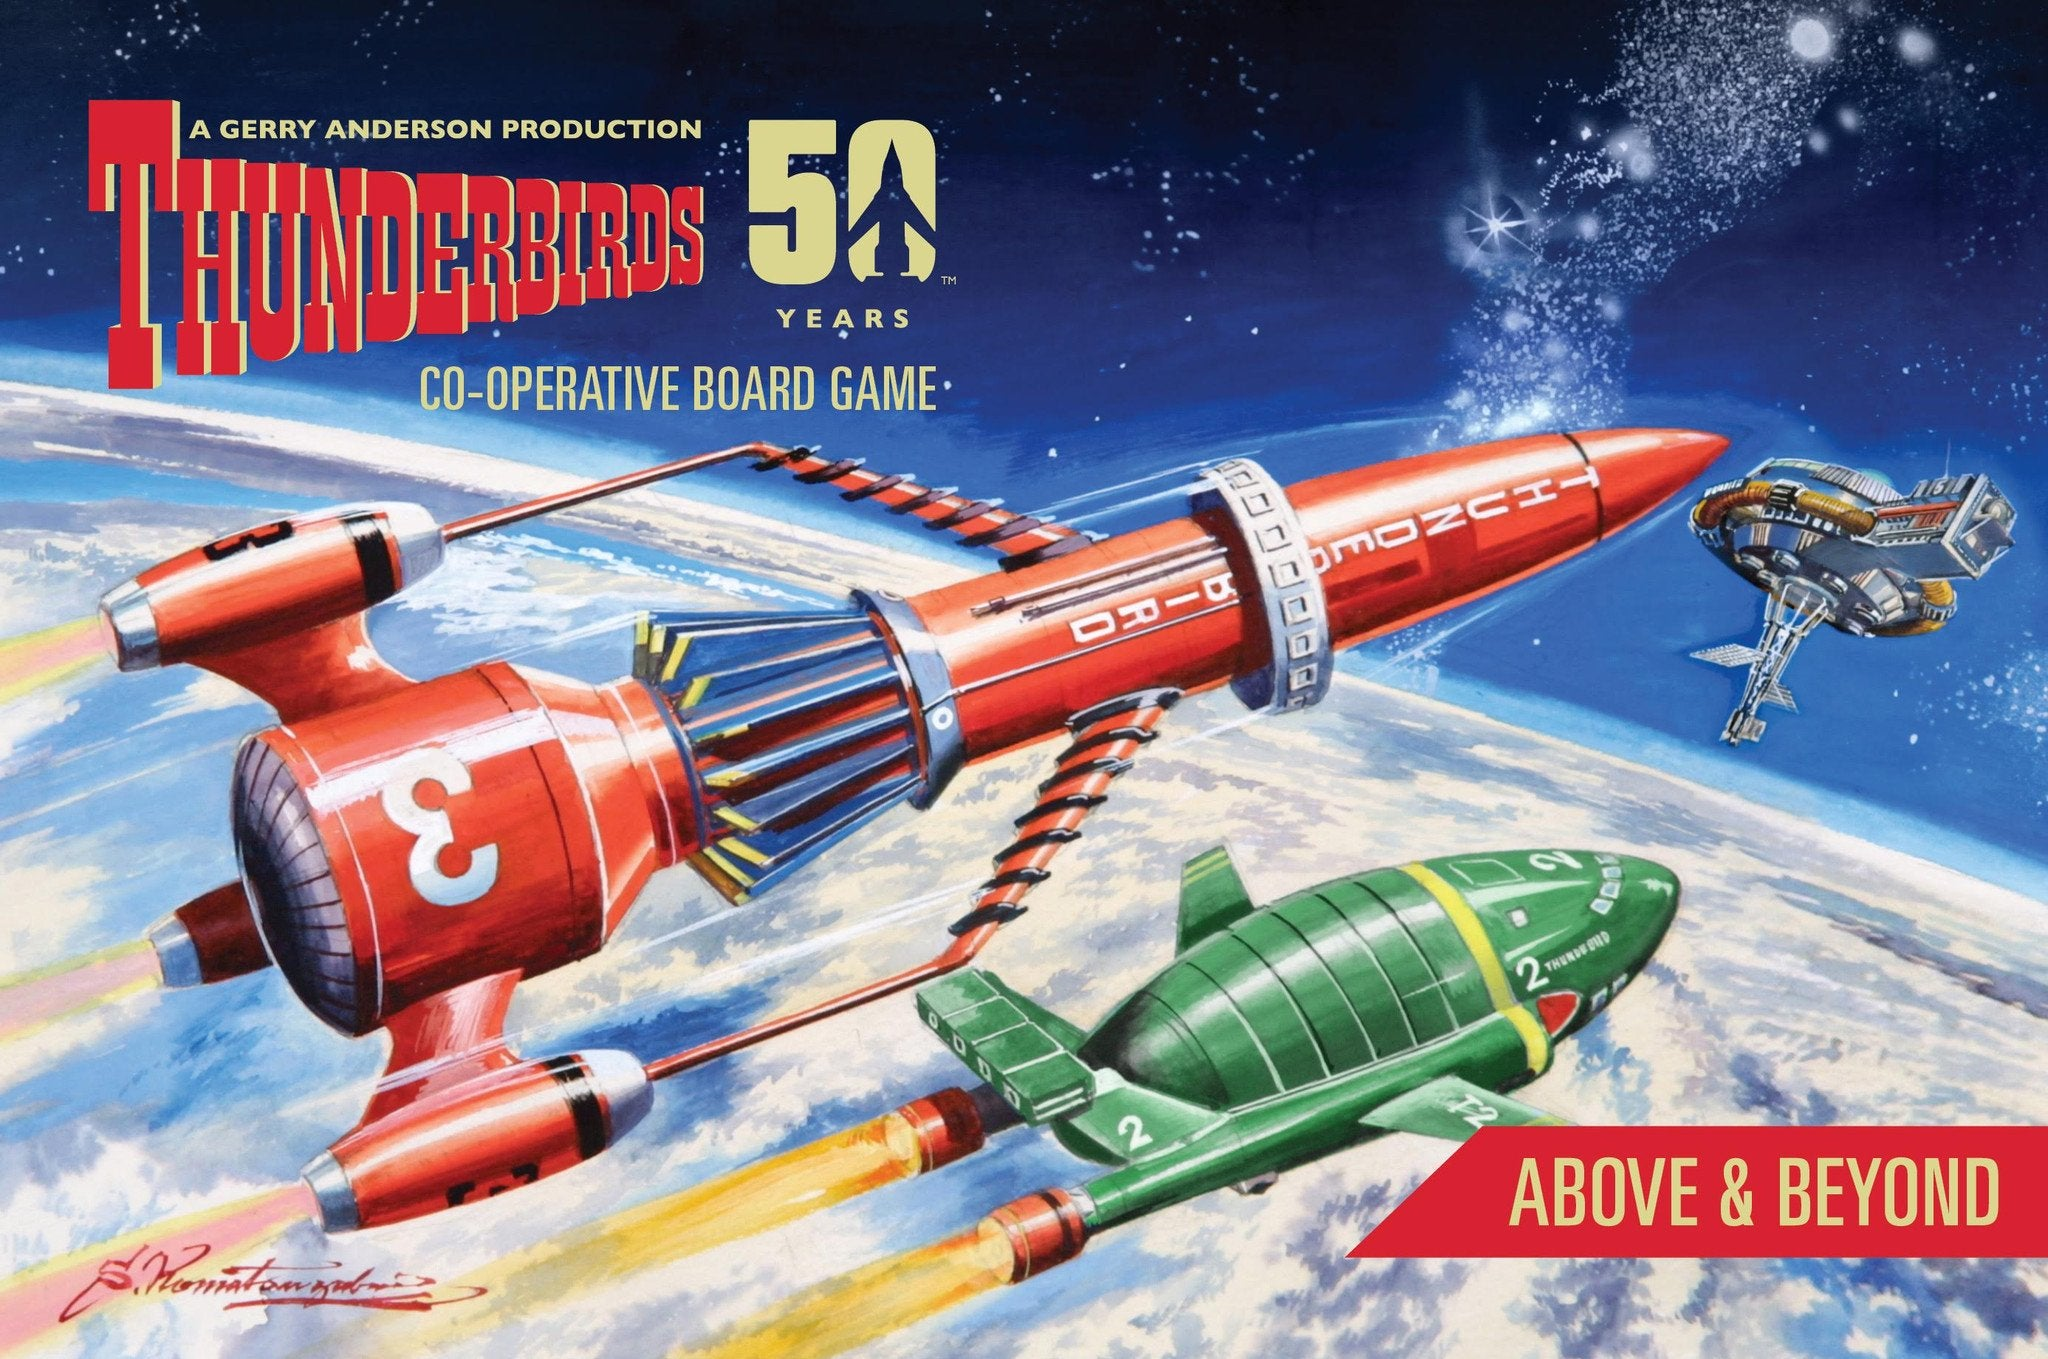 Thunderbirds Co-operative Board Game PLUS All three boxed expansions: Tracy Island, Above & Beyond, The Hood